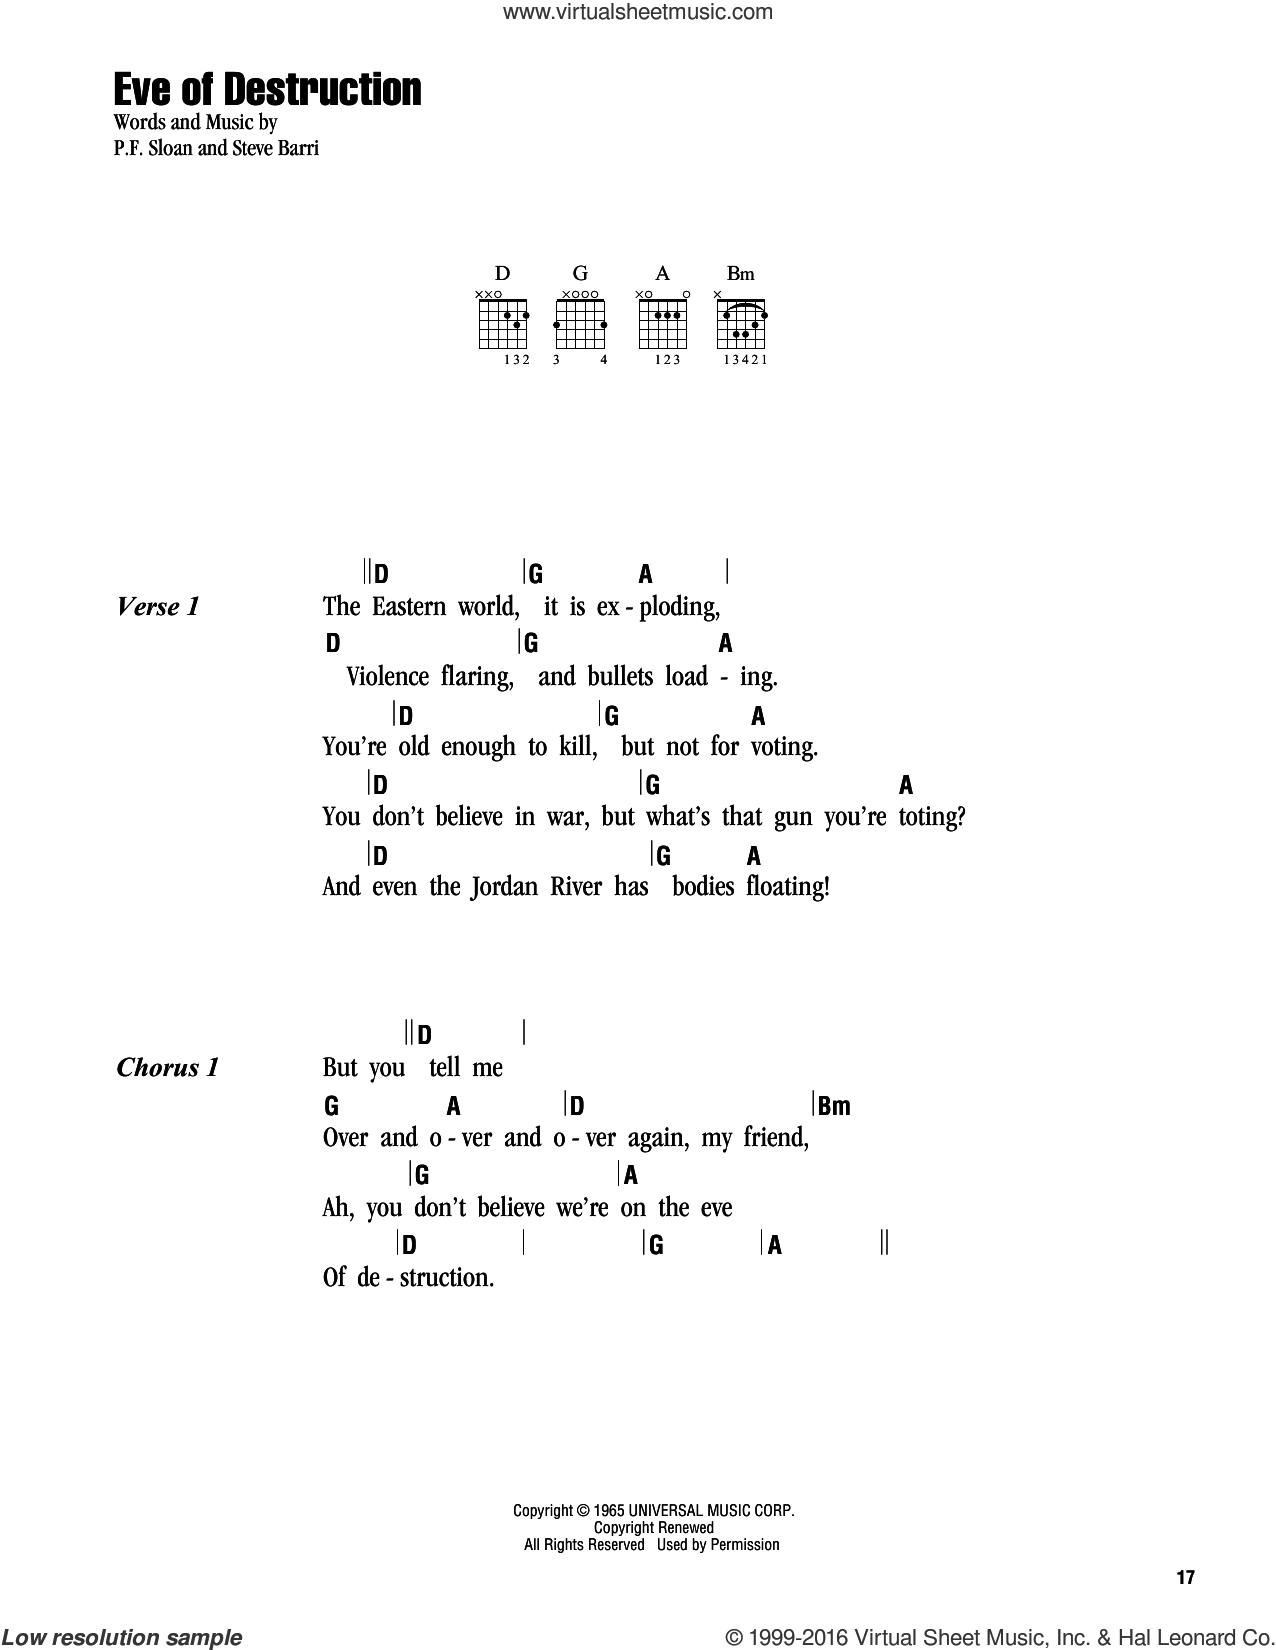 Eve Of Destruction sheet music for guitar (chords) by Barry McGuire, P.F. Sloan and Steve Barri, intermediate skill level